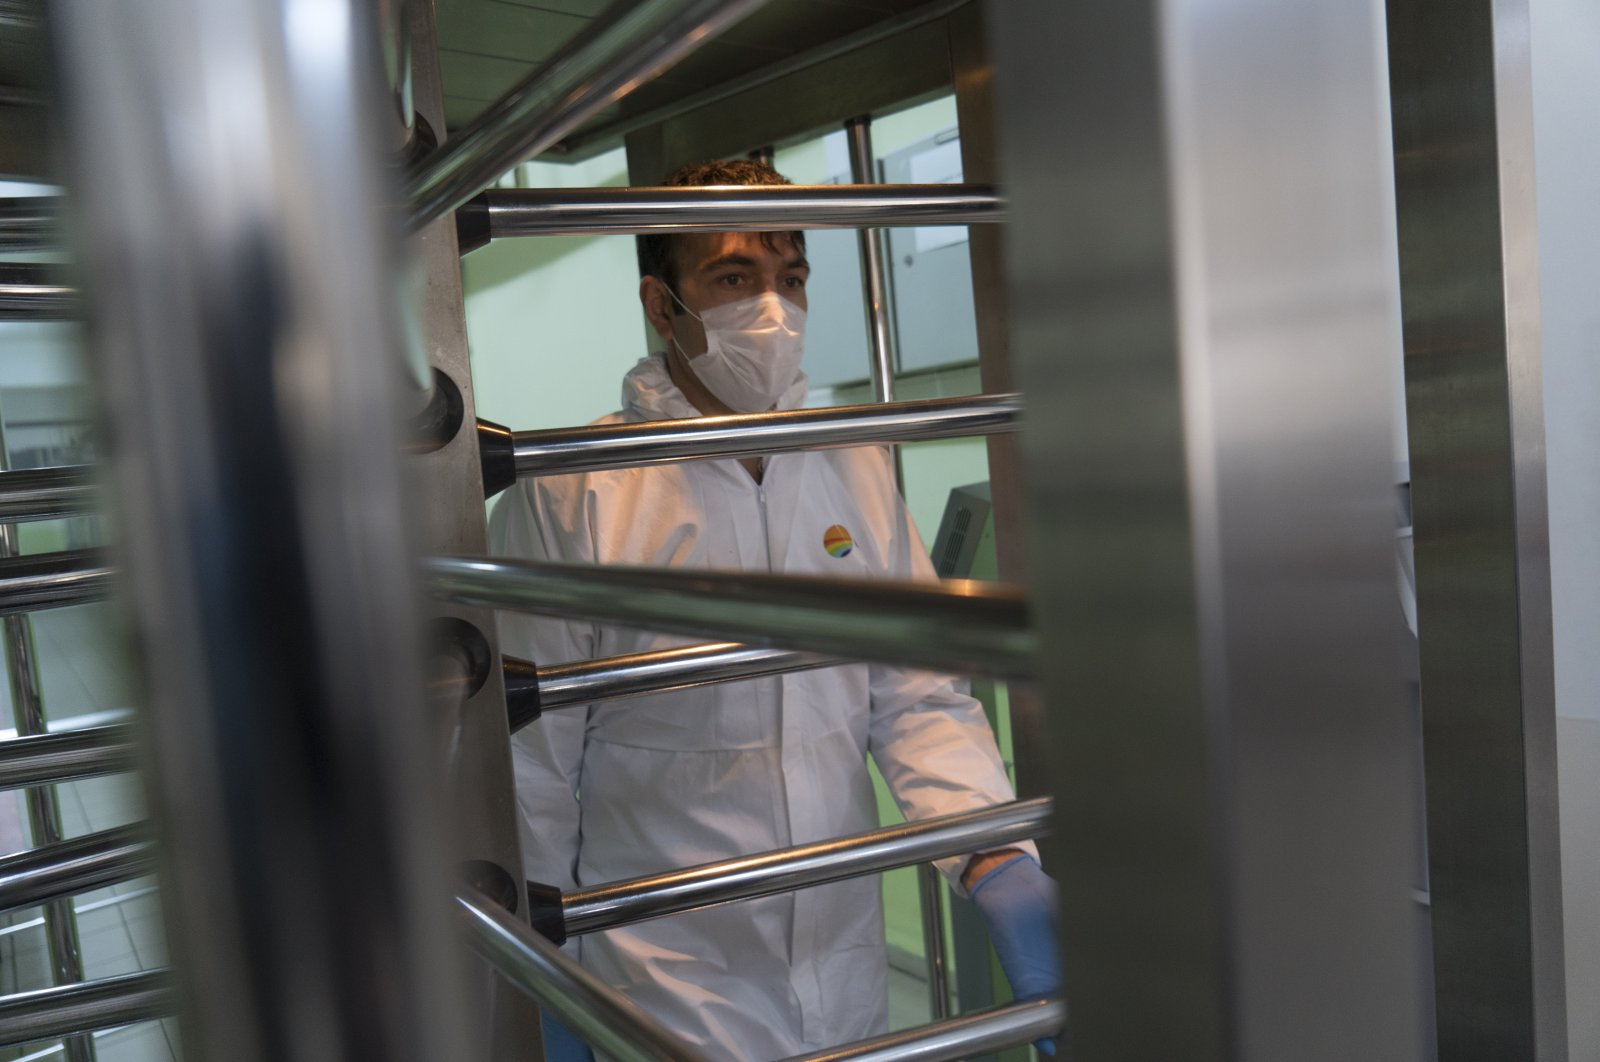 A worker exits Maltepe Prison in Istanbul after disinfecting the facility, April 7, 2020. (DHA Photo)